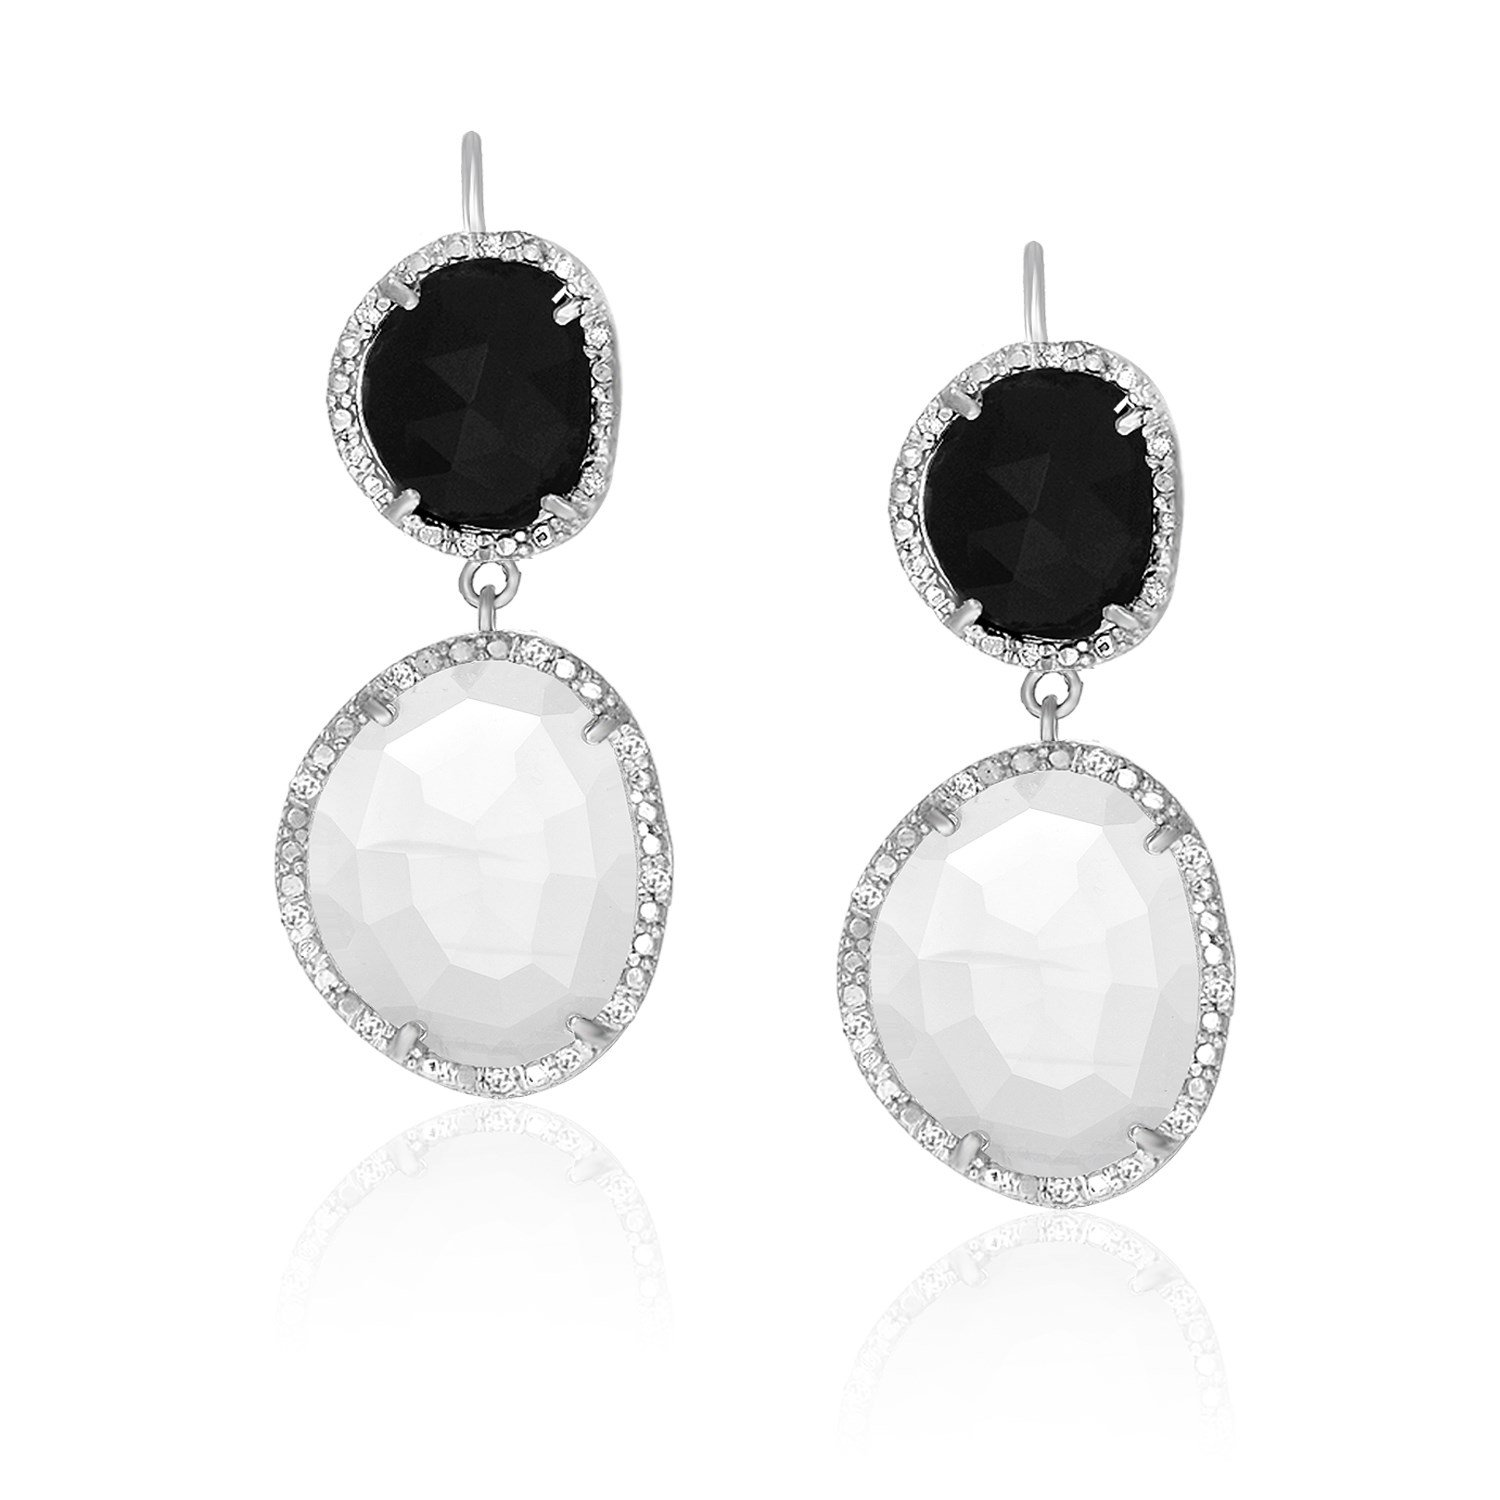 jewelry overstock earrings onyx free product today sterling black shipping silver watches miadora